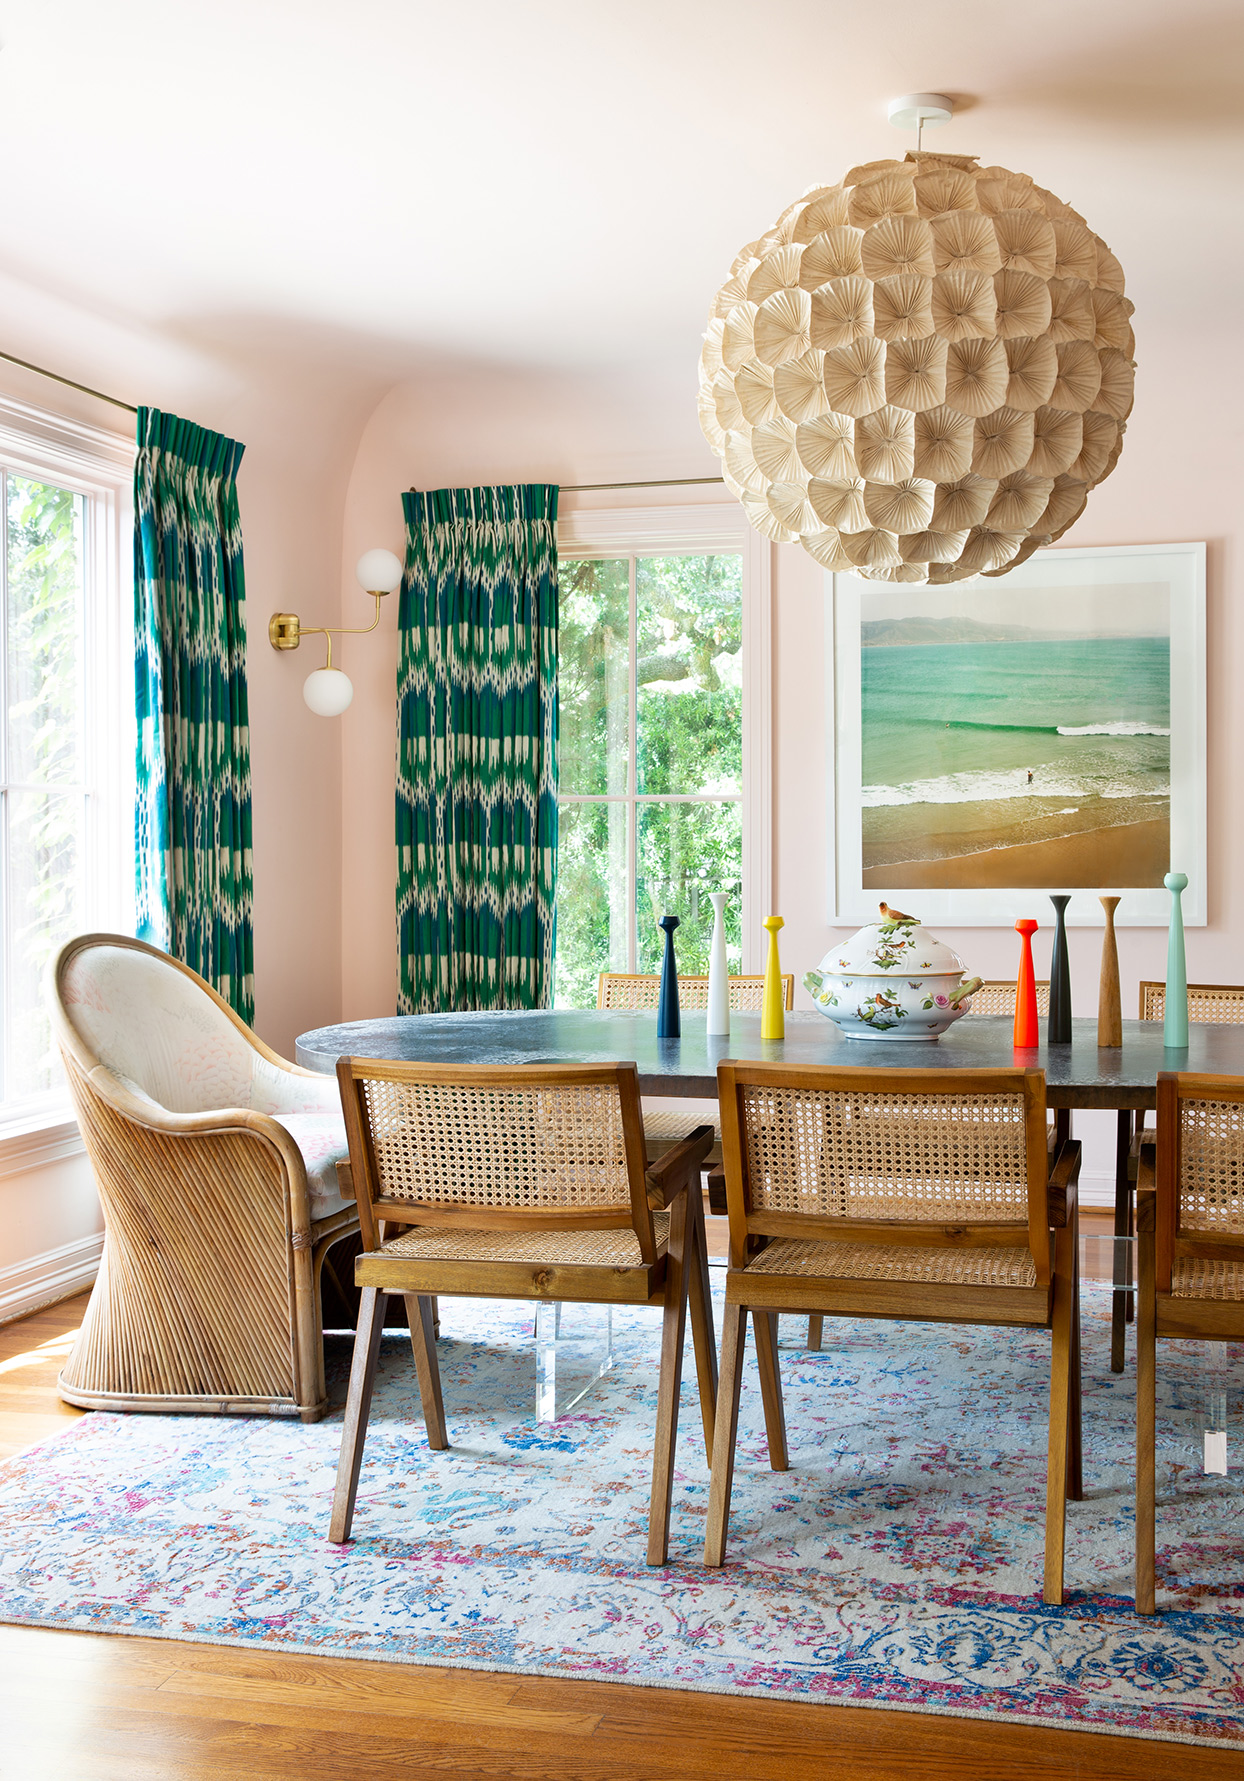 houston dining room with wicker chairs and peach walls